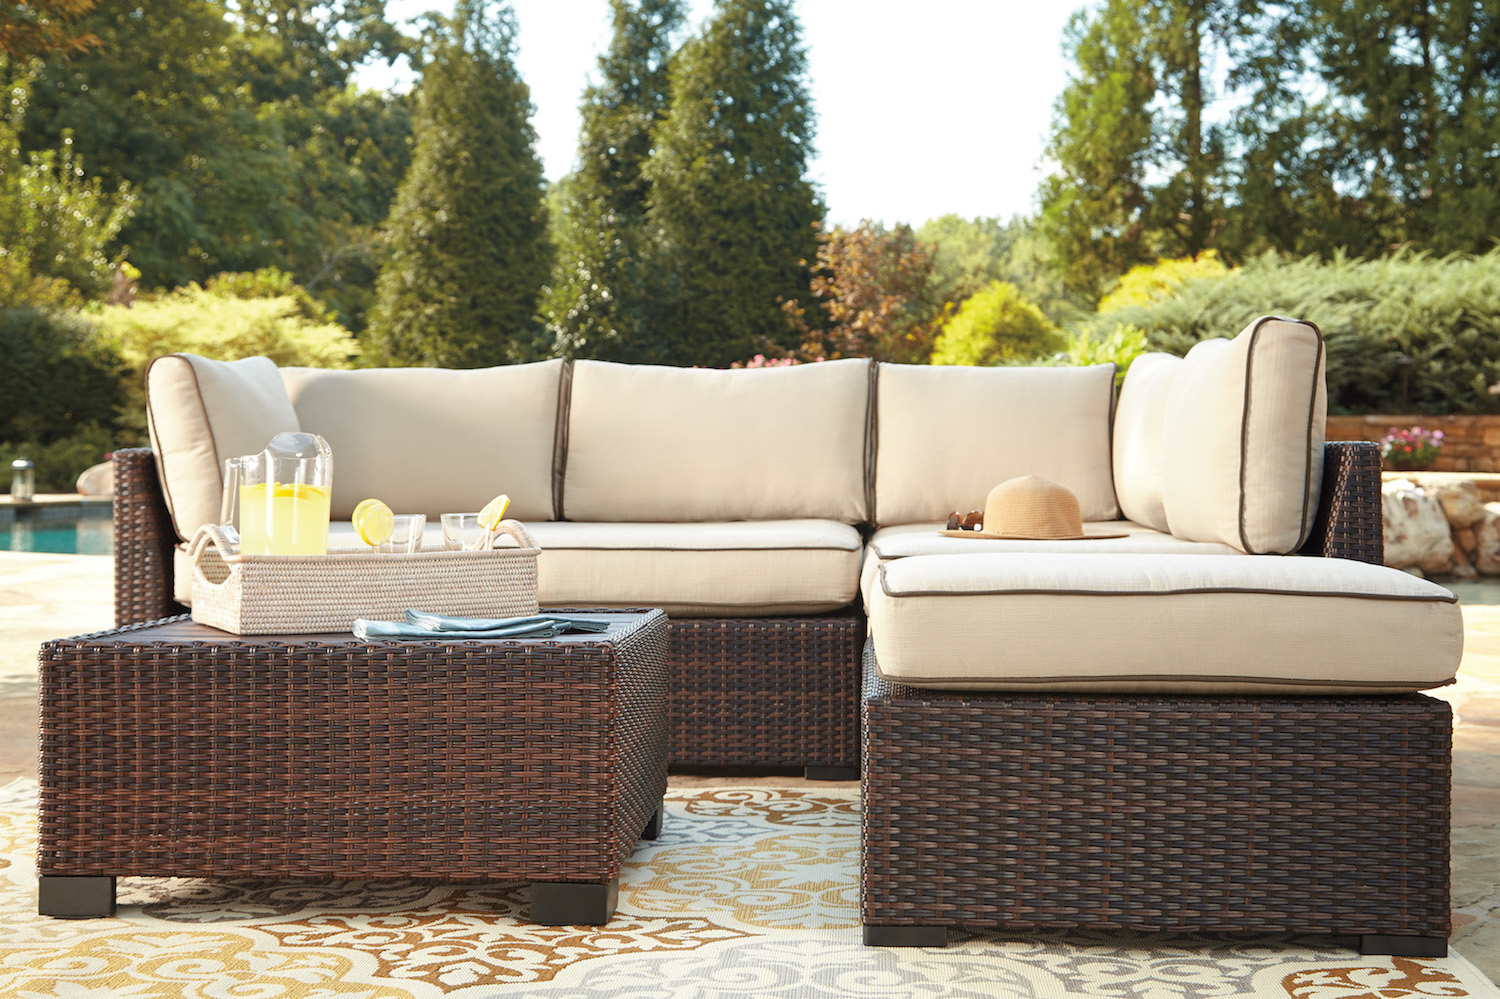 sectional set product festival wicker depot piece conversation sofa patio outdoor